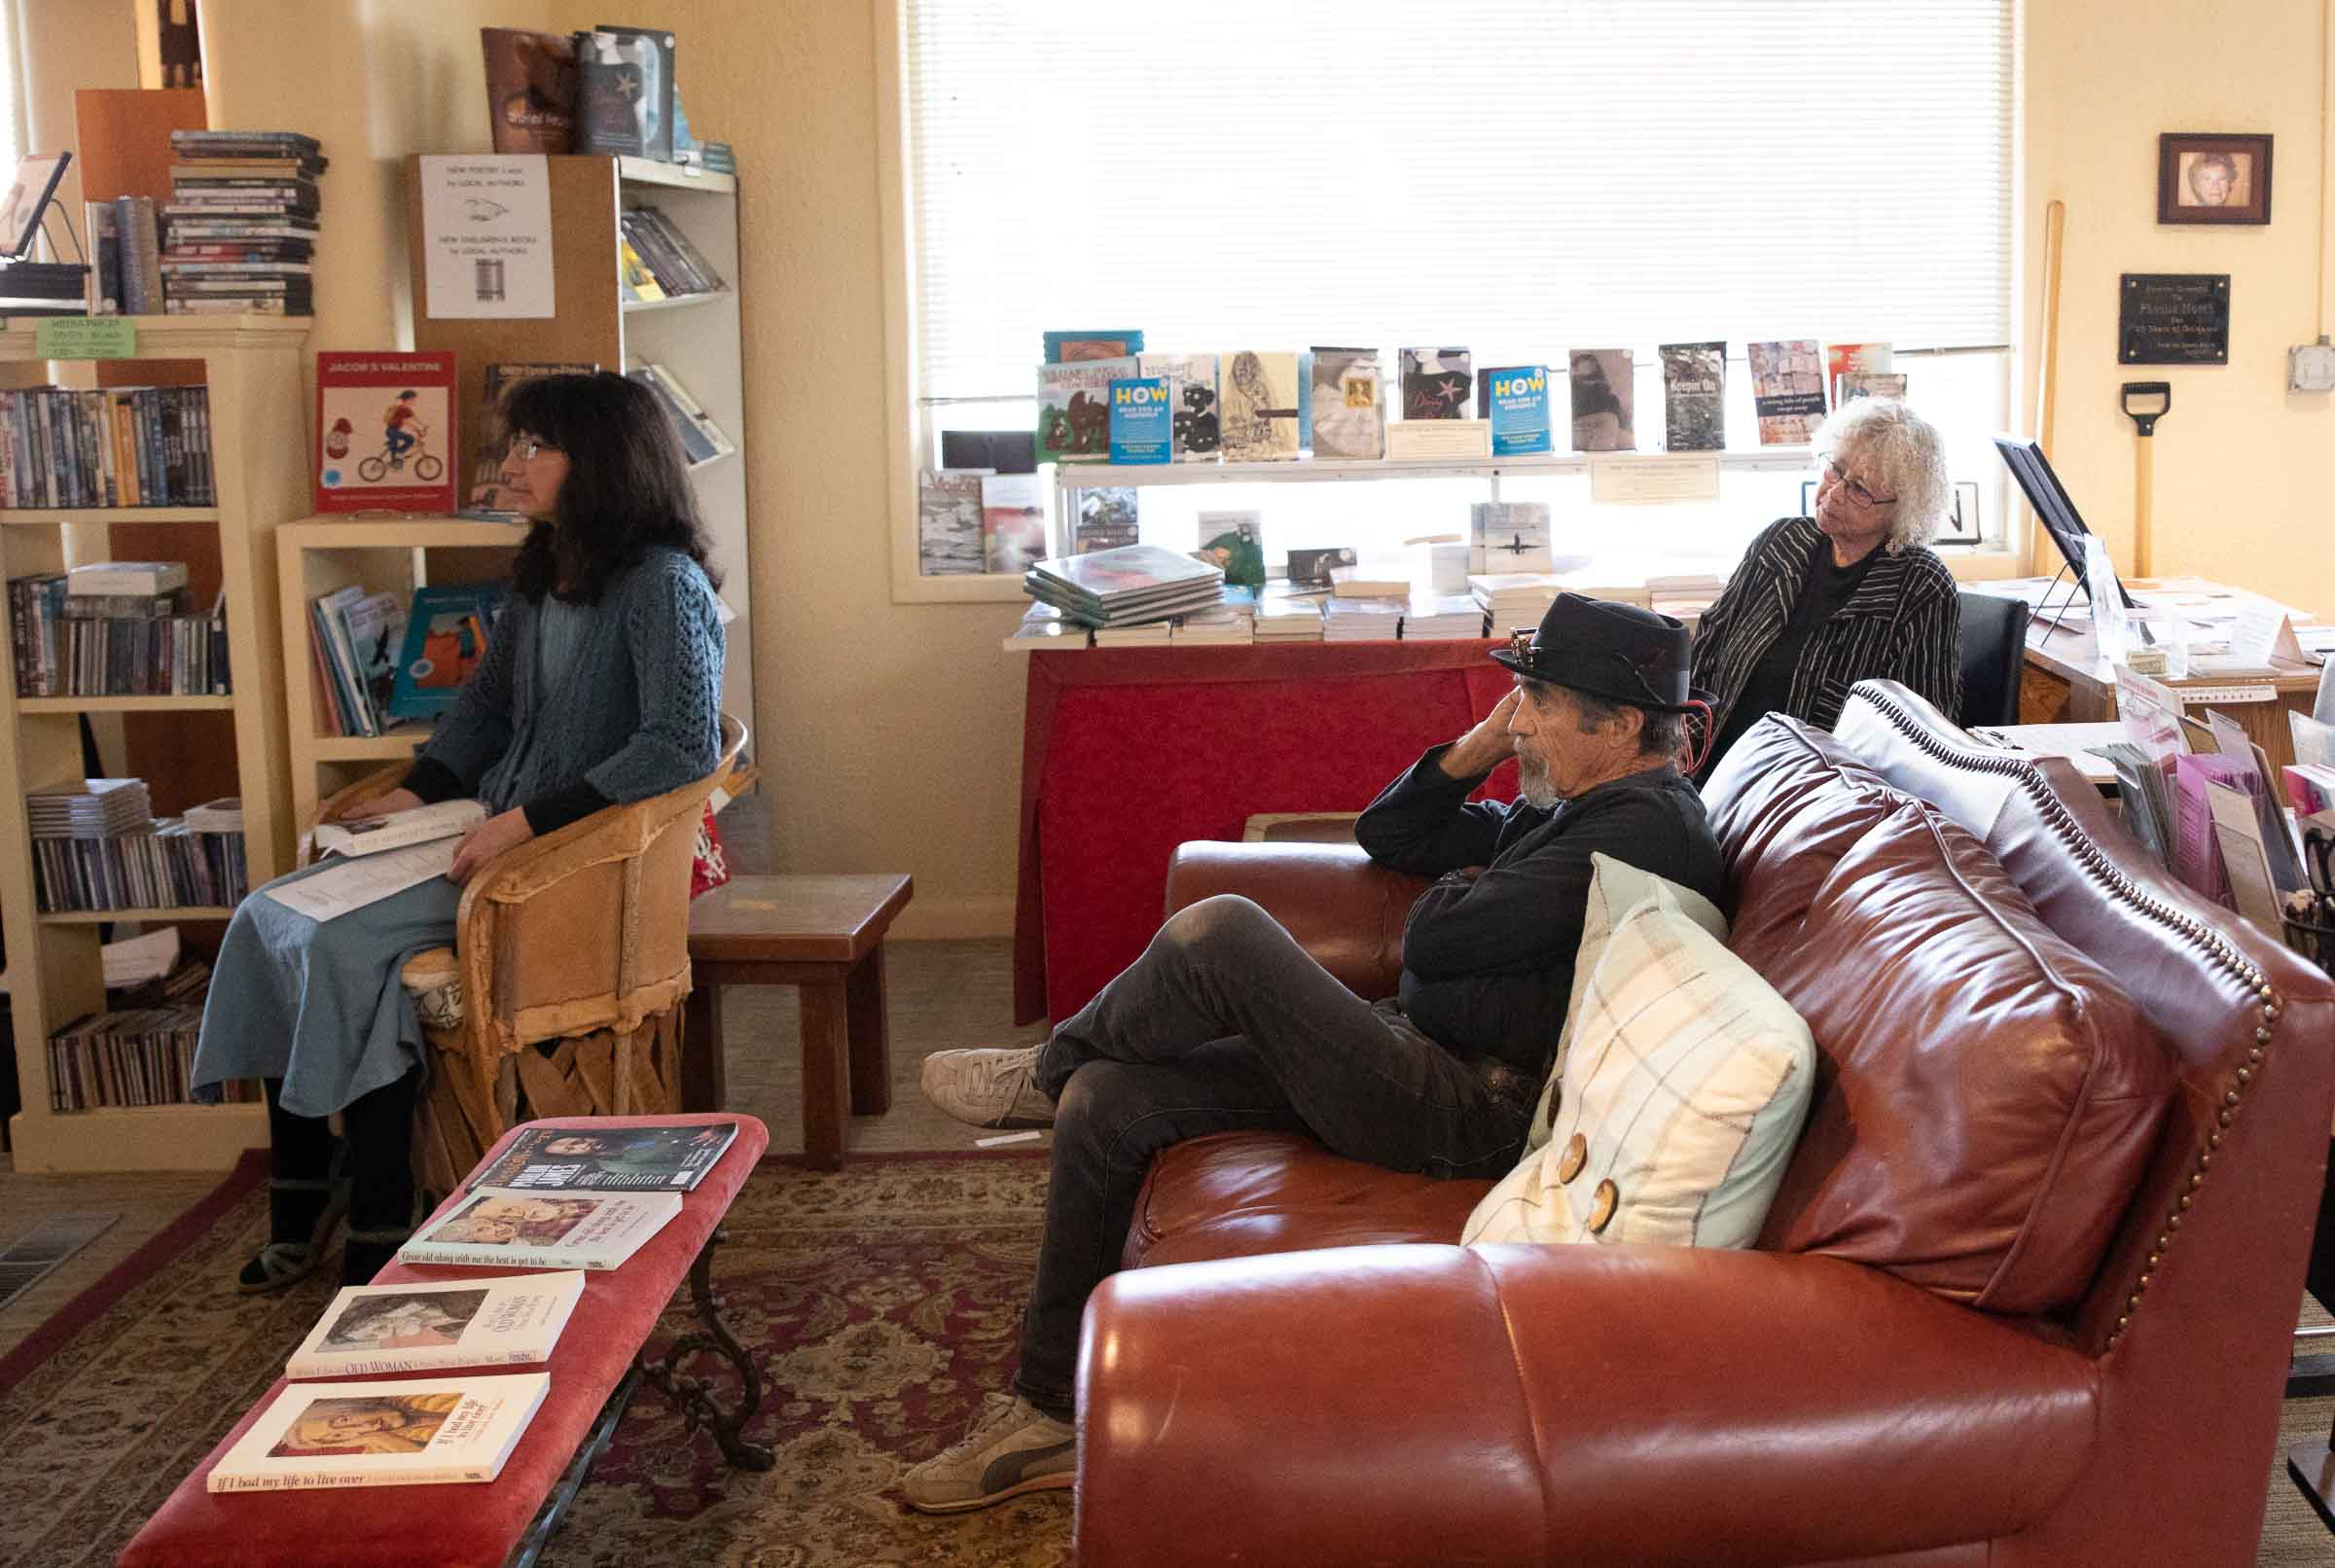 Three people listening to a speaker at SOMOS Boostore in Taos, New Mexico